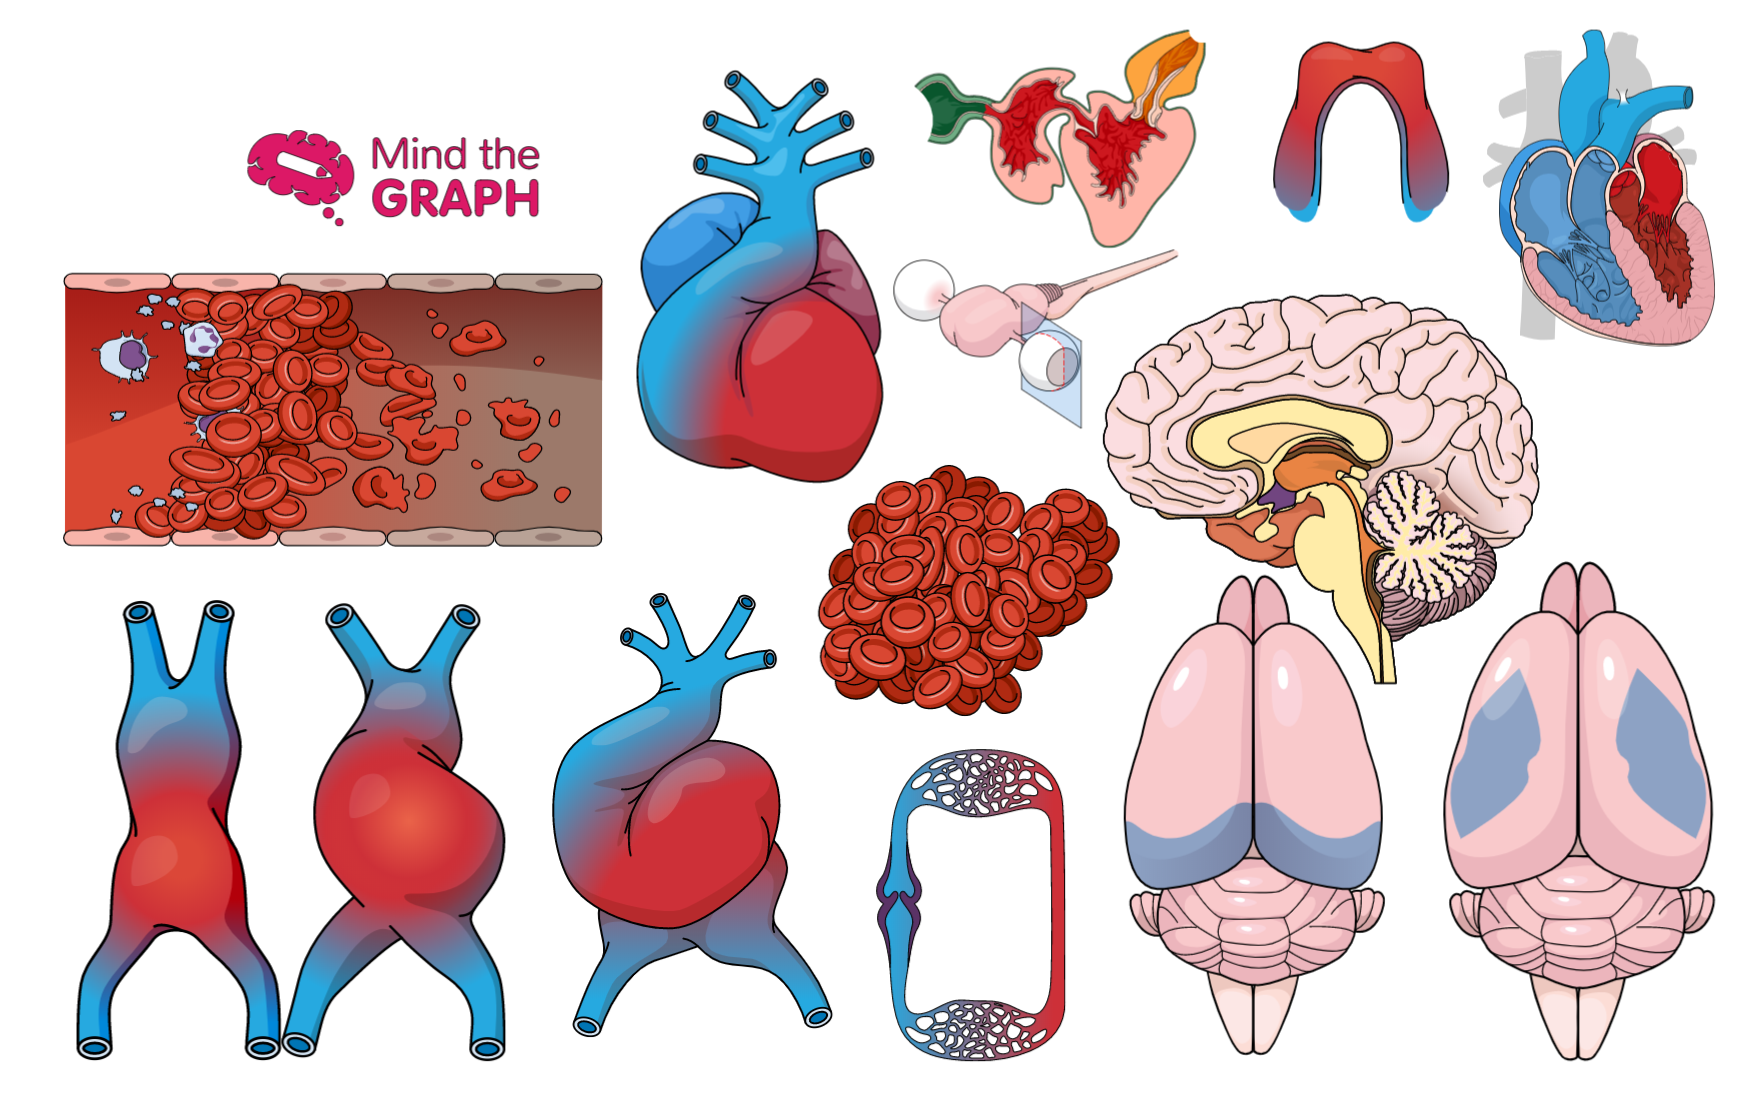 #31 Cardiology and neuroscience illustrations: The best medical illustrations